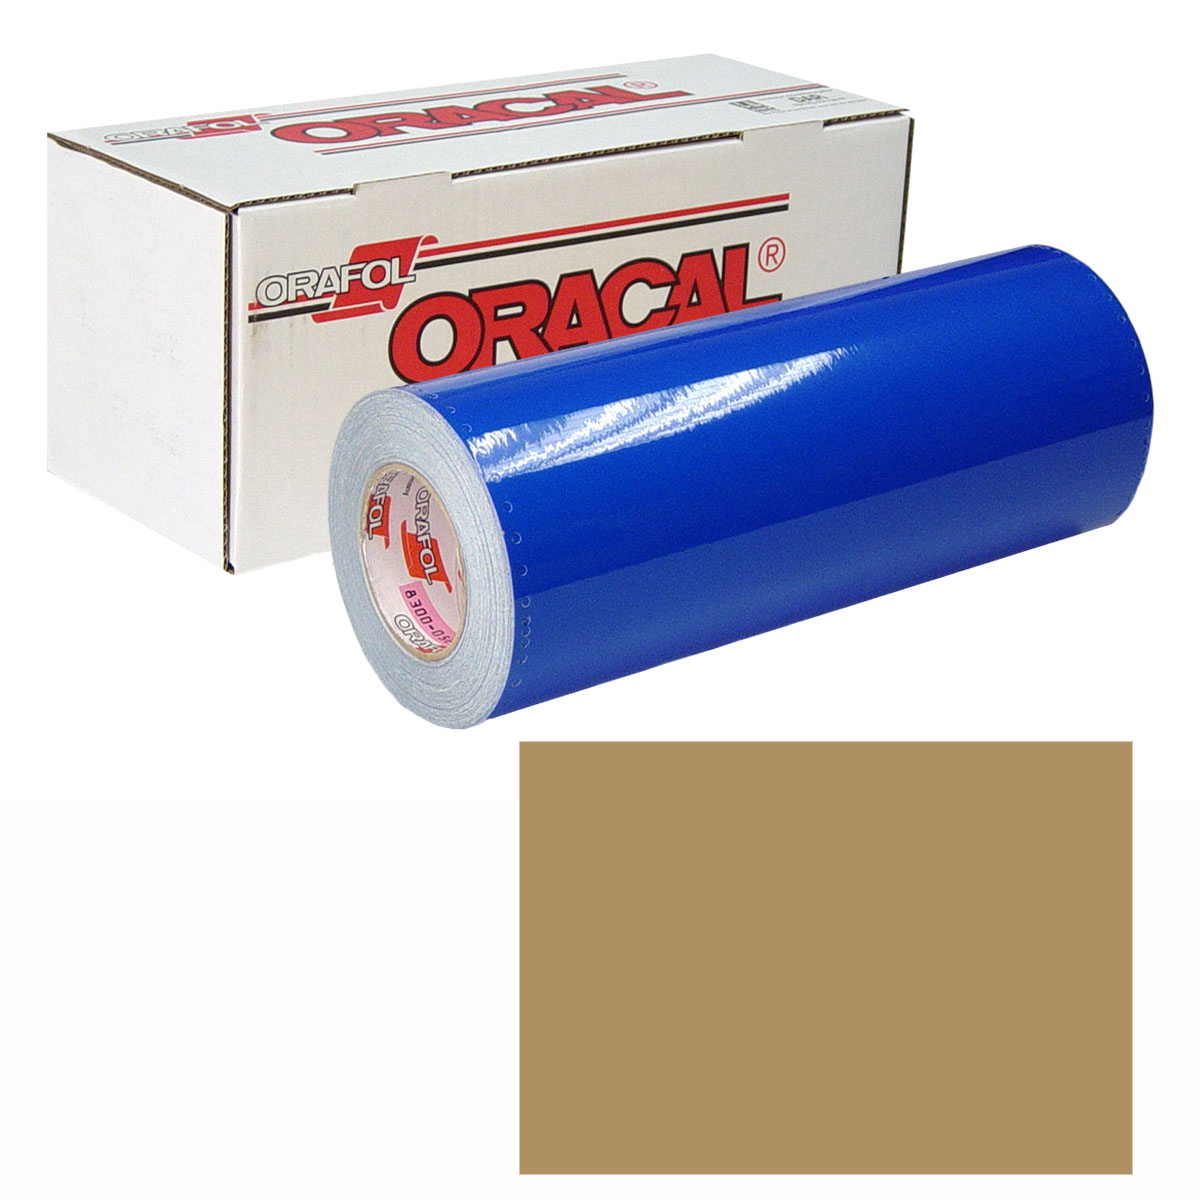 ORACAL 631 Unp 48In X 50Yd 091 Gold Met